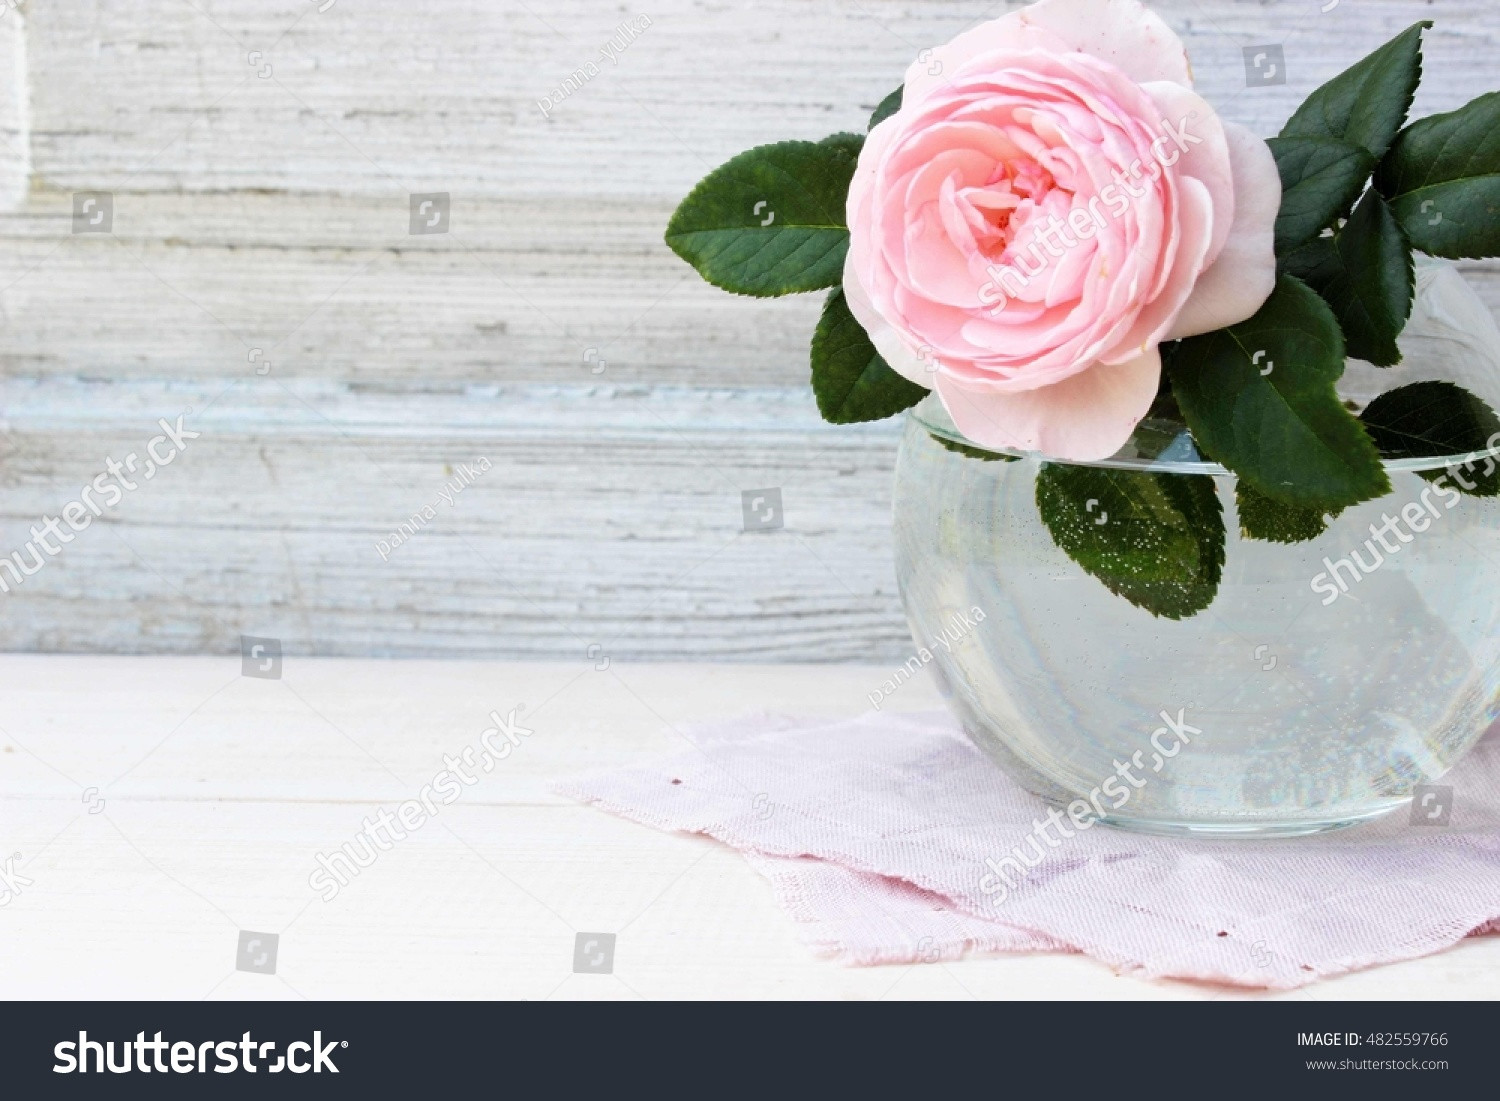 single rose glass vase of royalty free single flower of pink rose in round 482559766 stock for single flower of pink rose in round glass vase on old white wooden background floral